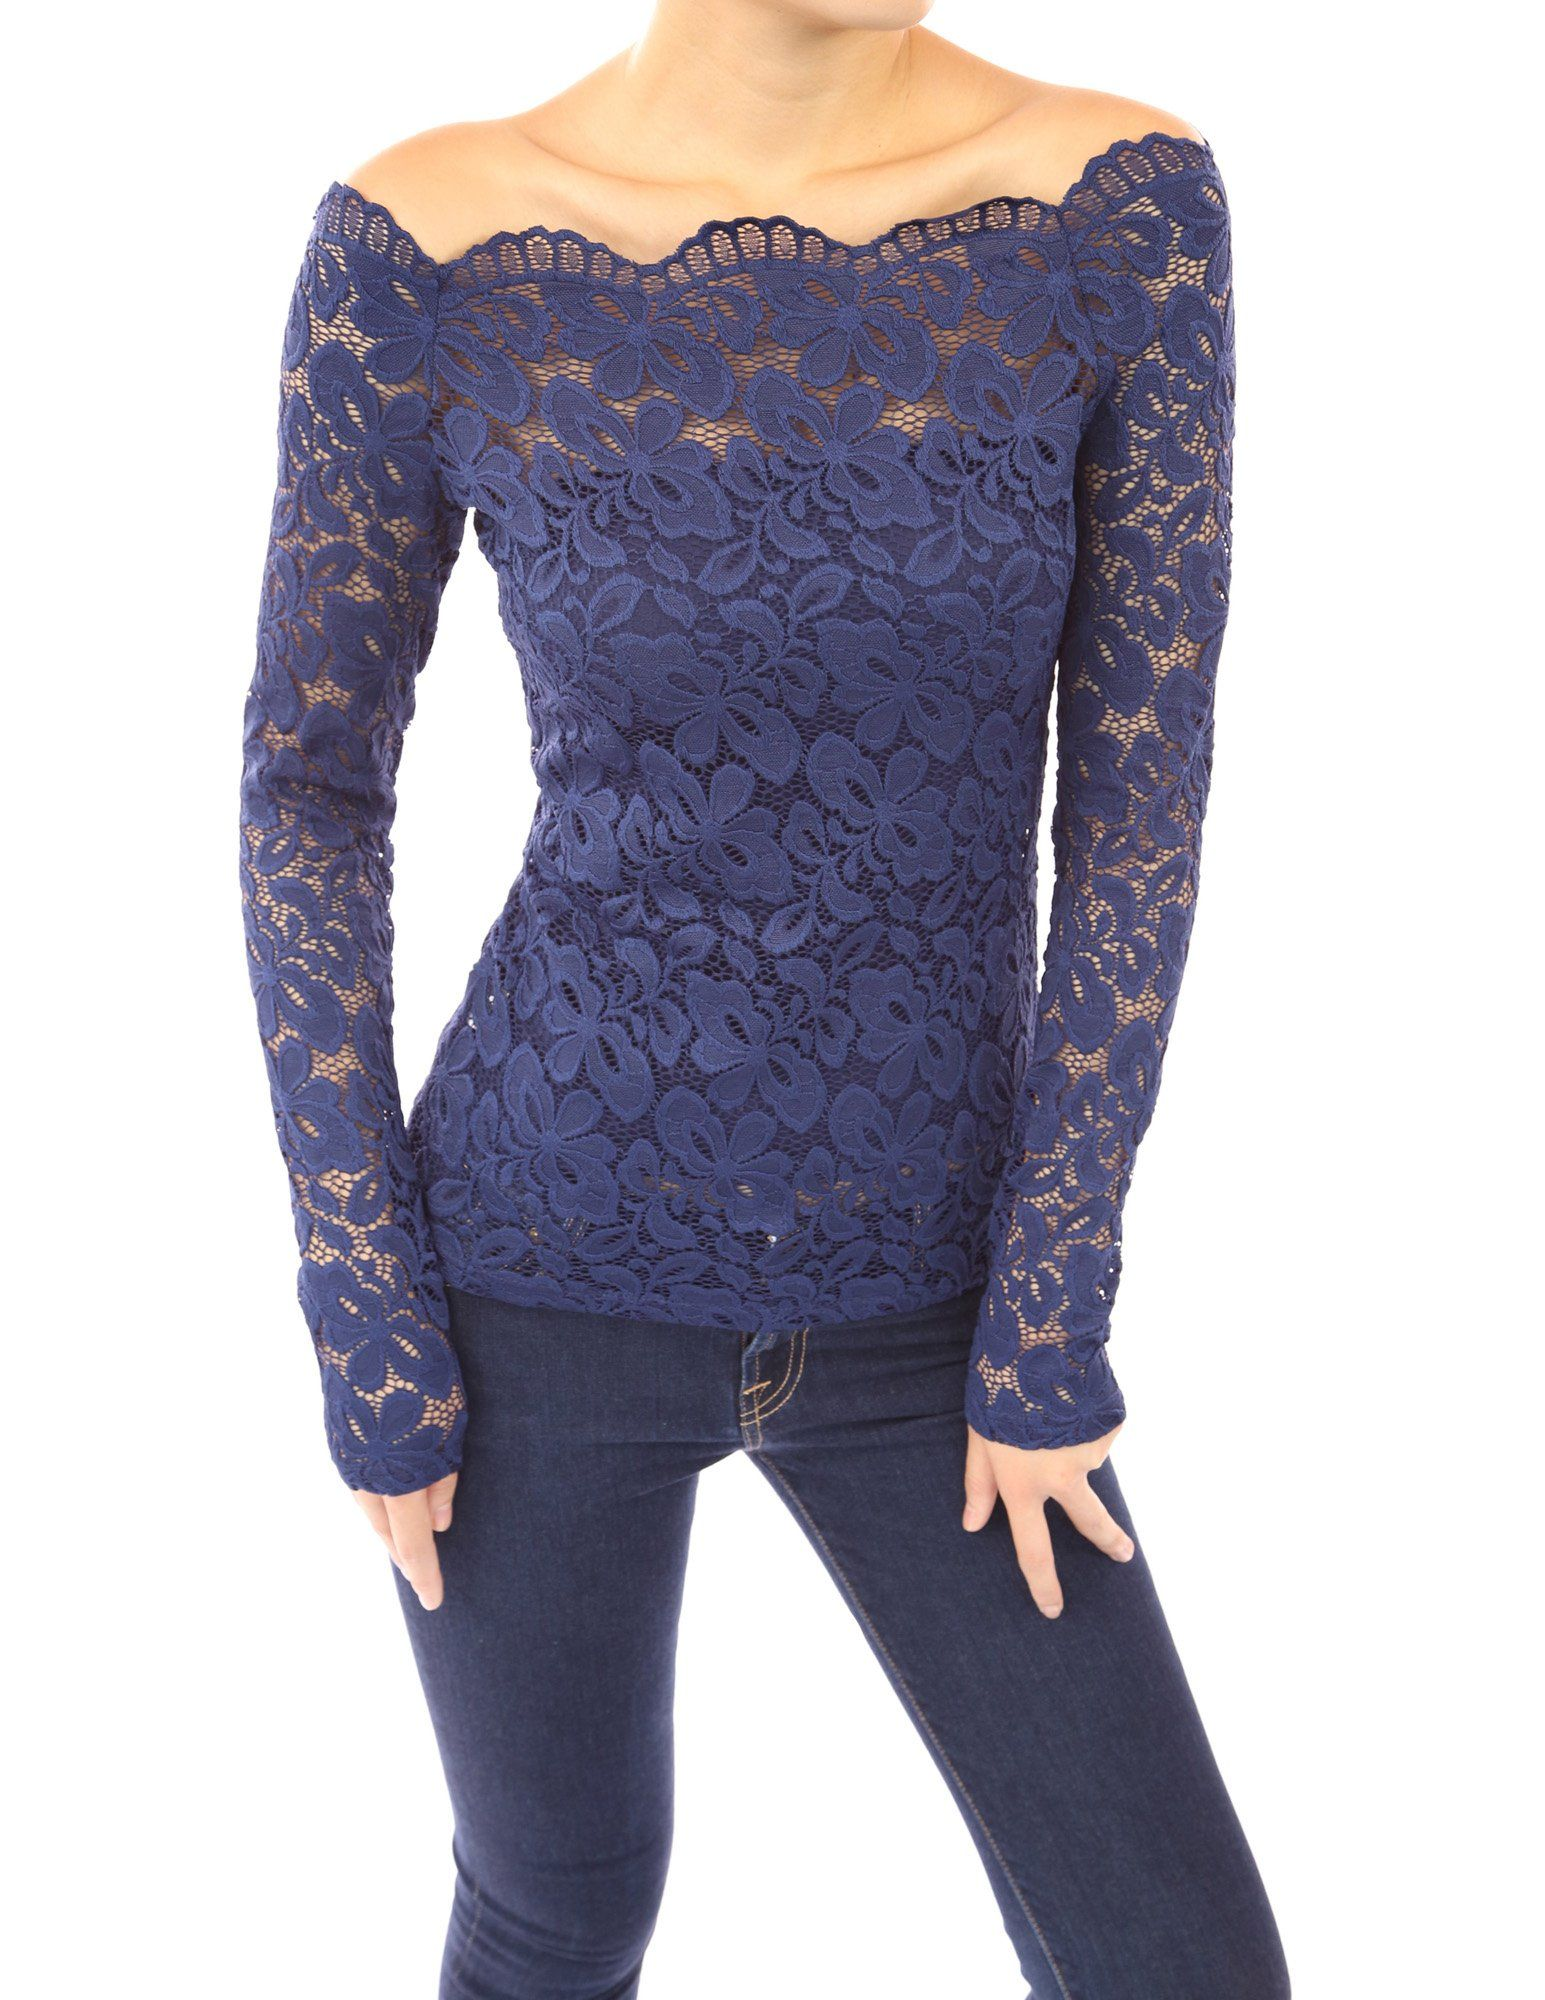 Pattyboutik Women S Floral Lace Off Shoulder Top At Amazon Women S Clothing Store Crochet Lace Shirt Navy Blue Lace Top Lace Tops